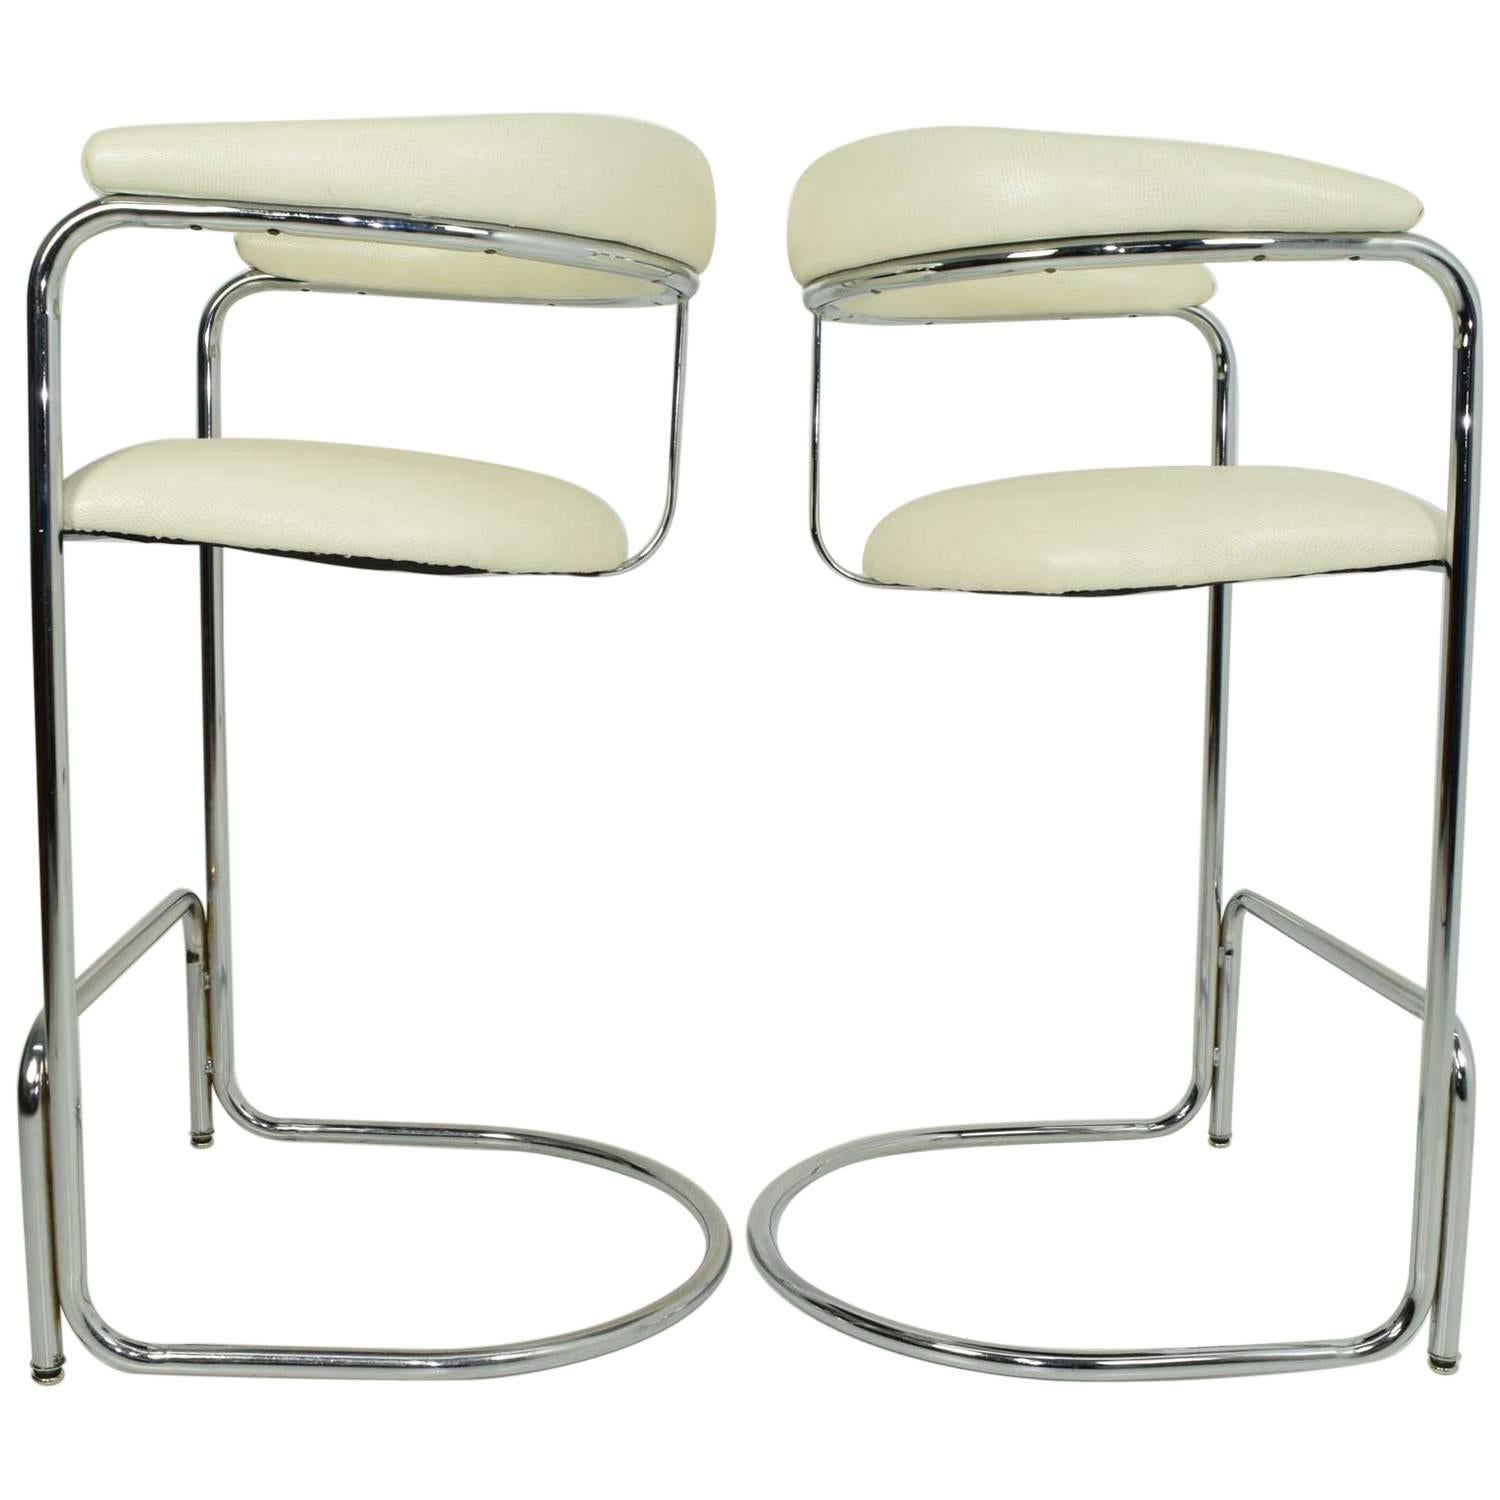 Great Bar Stools By Anton Lorenz For Thonet 1